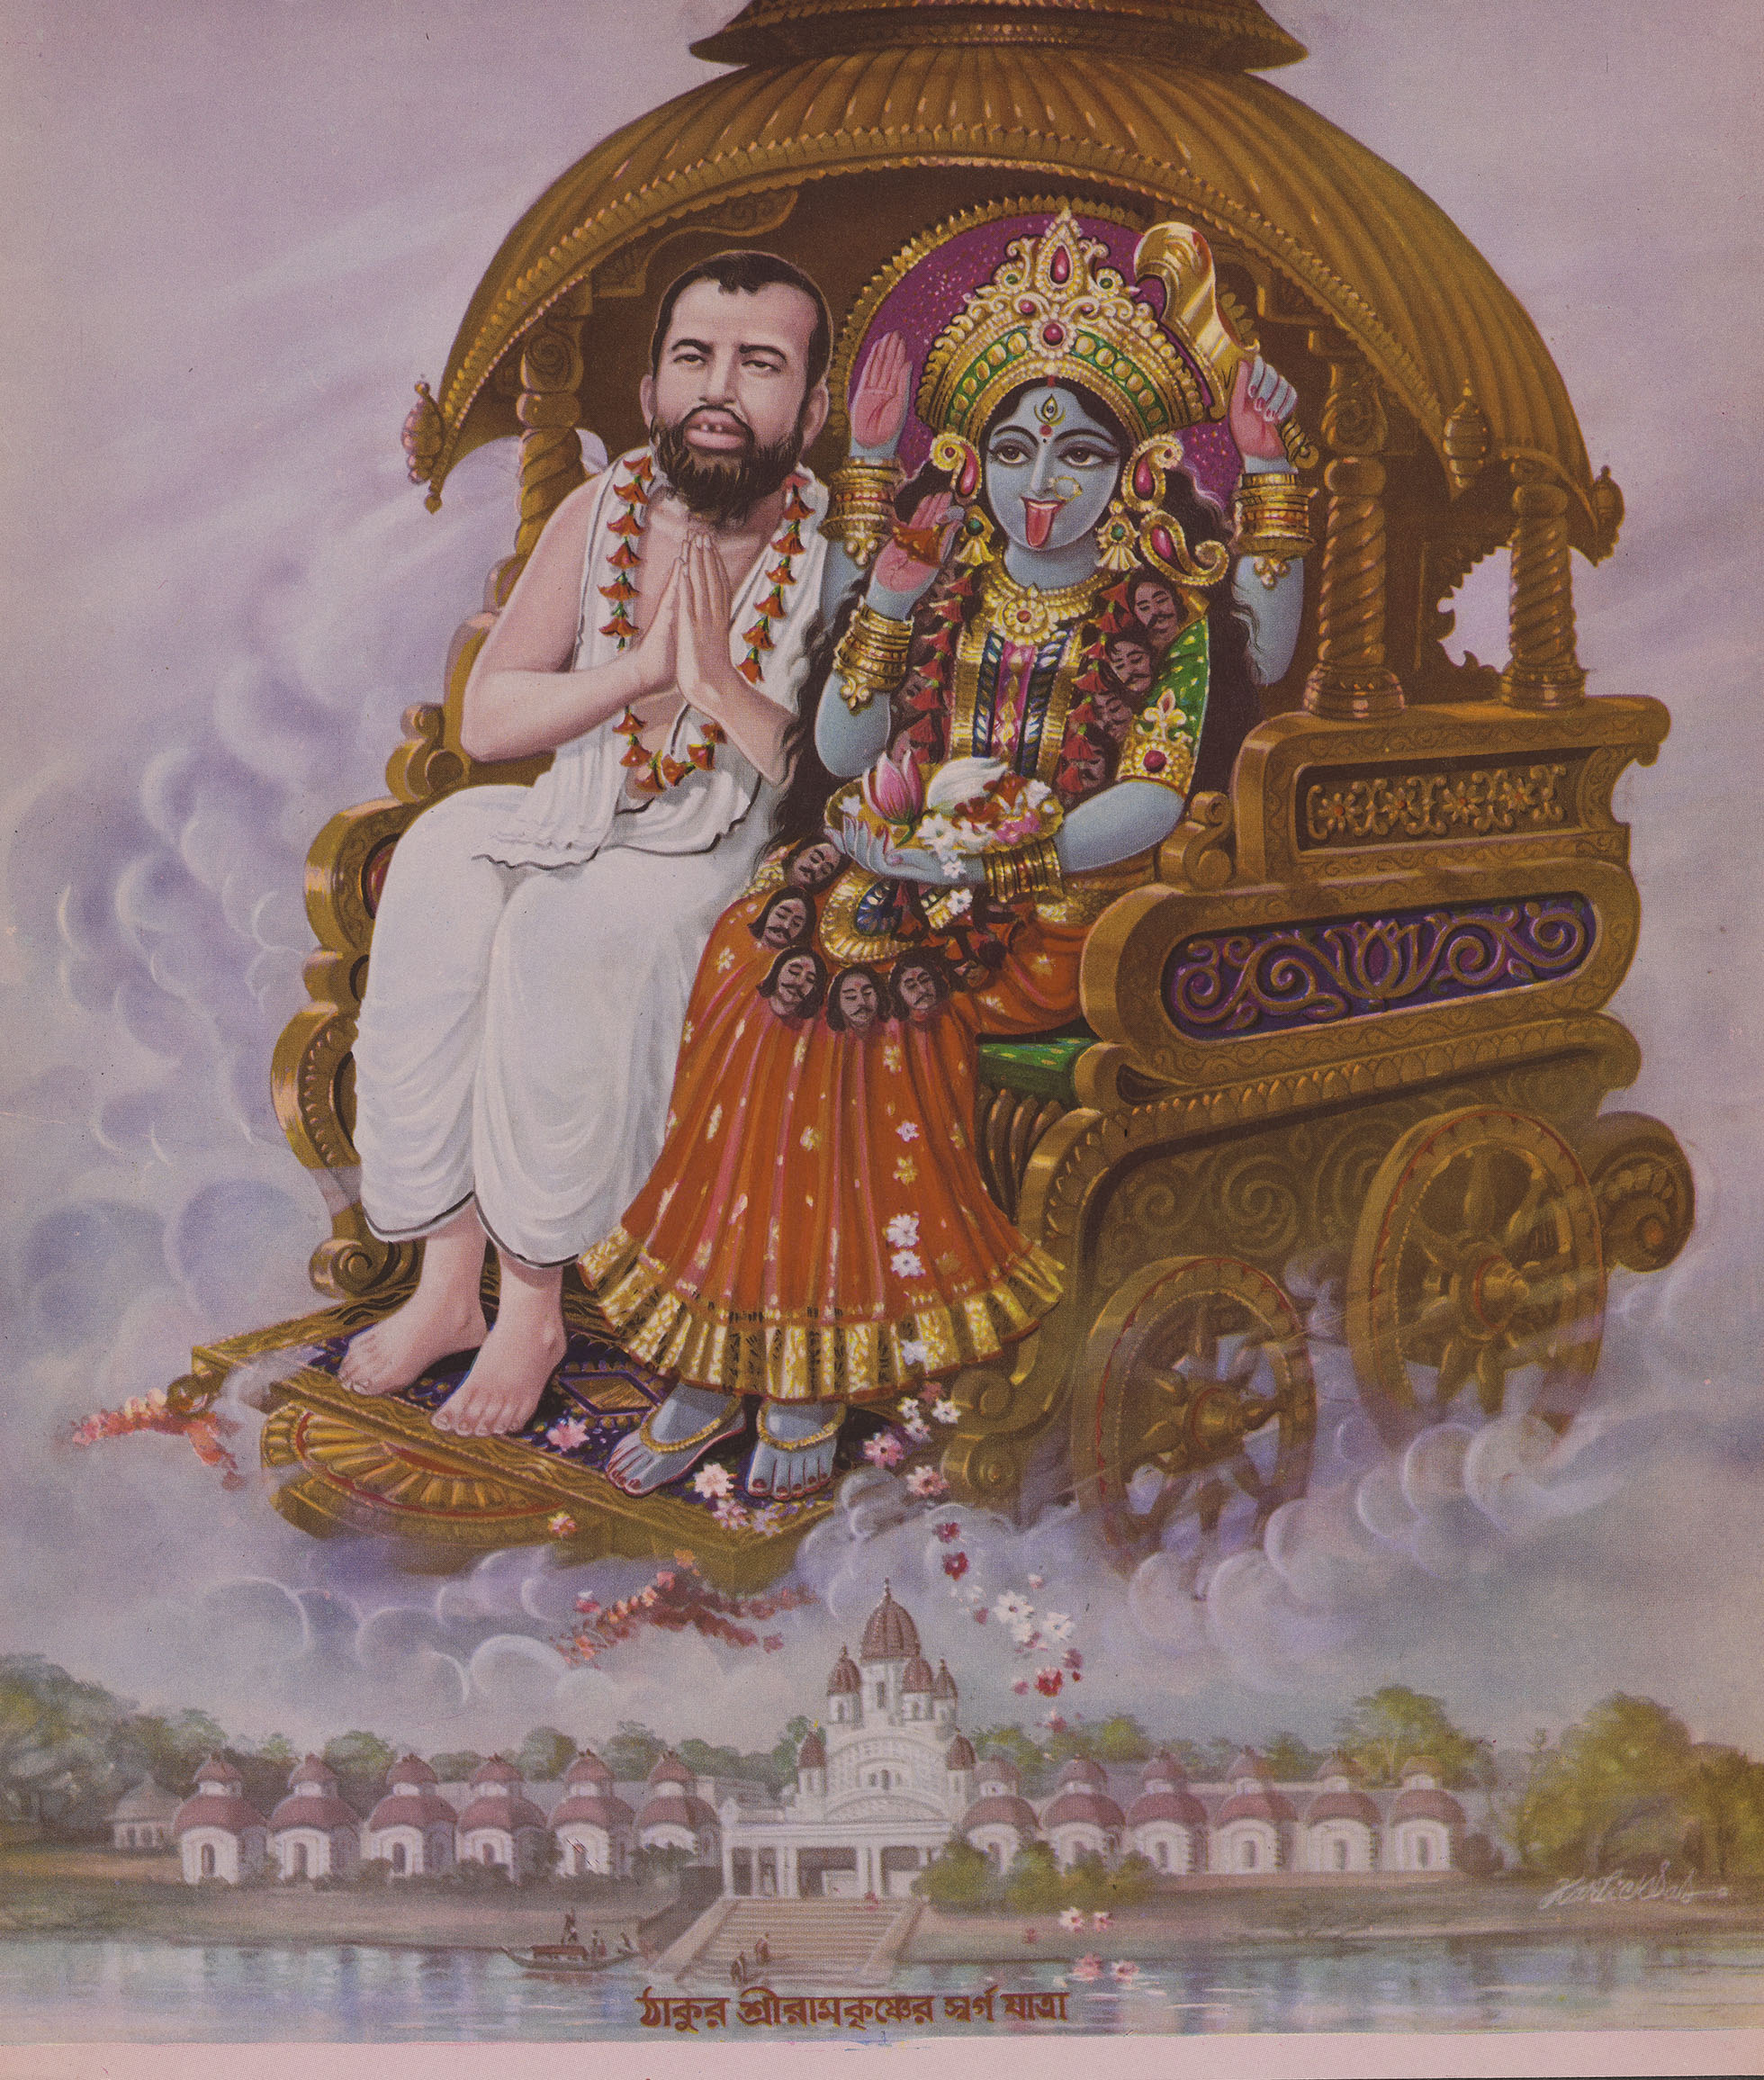 Ramakrishna and Kali sit in a carriage which is riding into heaven.